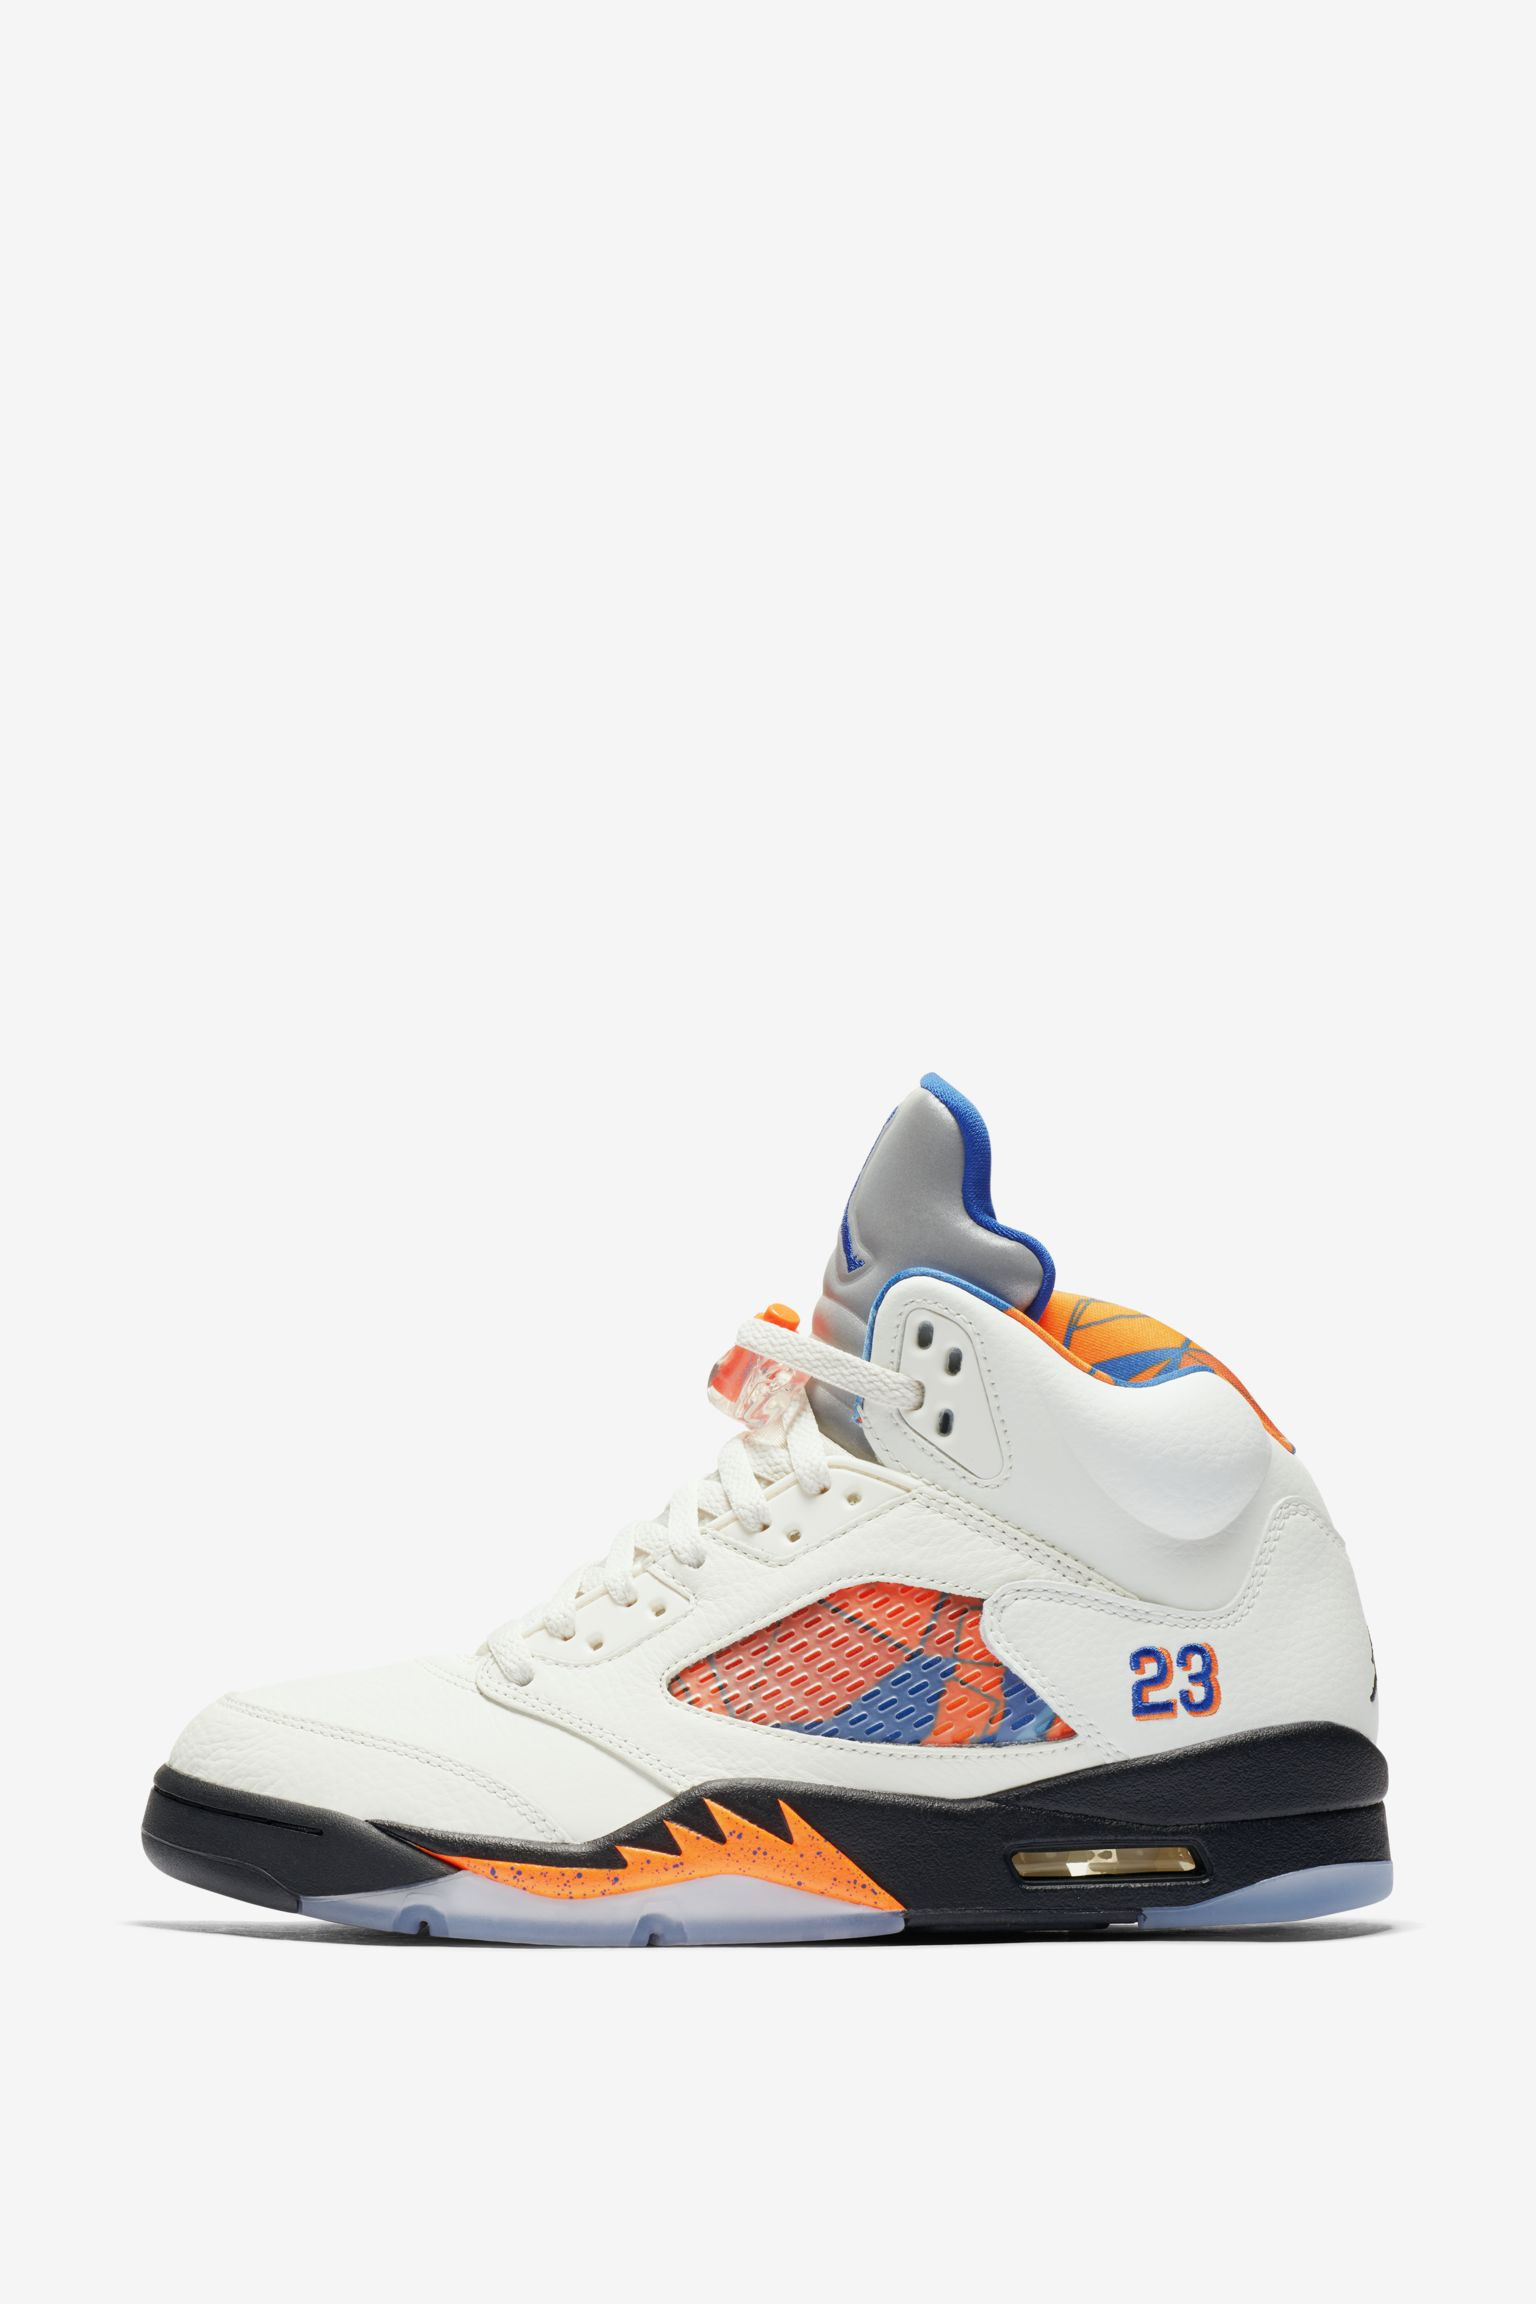 2f84452237e3 Buy 2 OFF ANY nike air jordan v CASE AND GET 70% OFF!